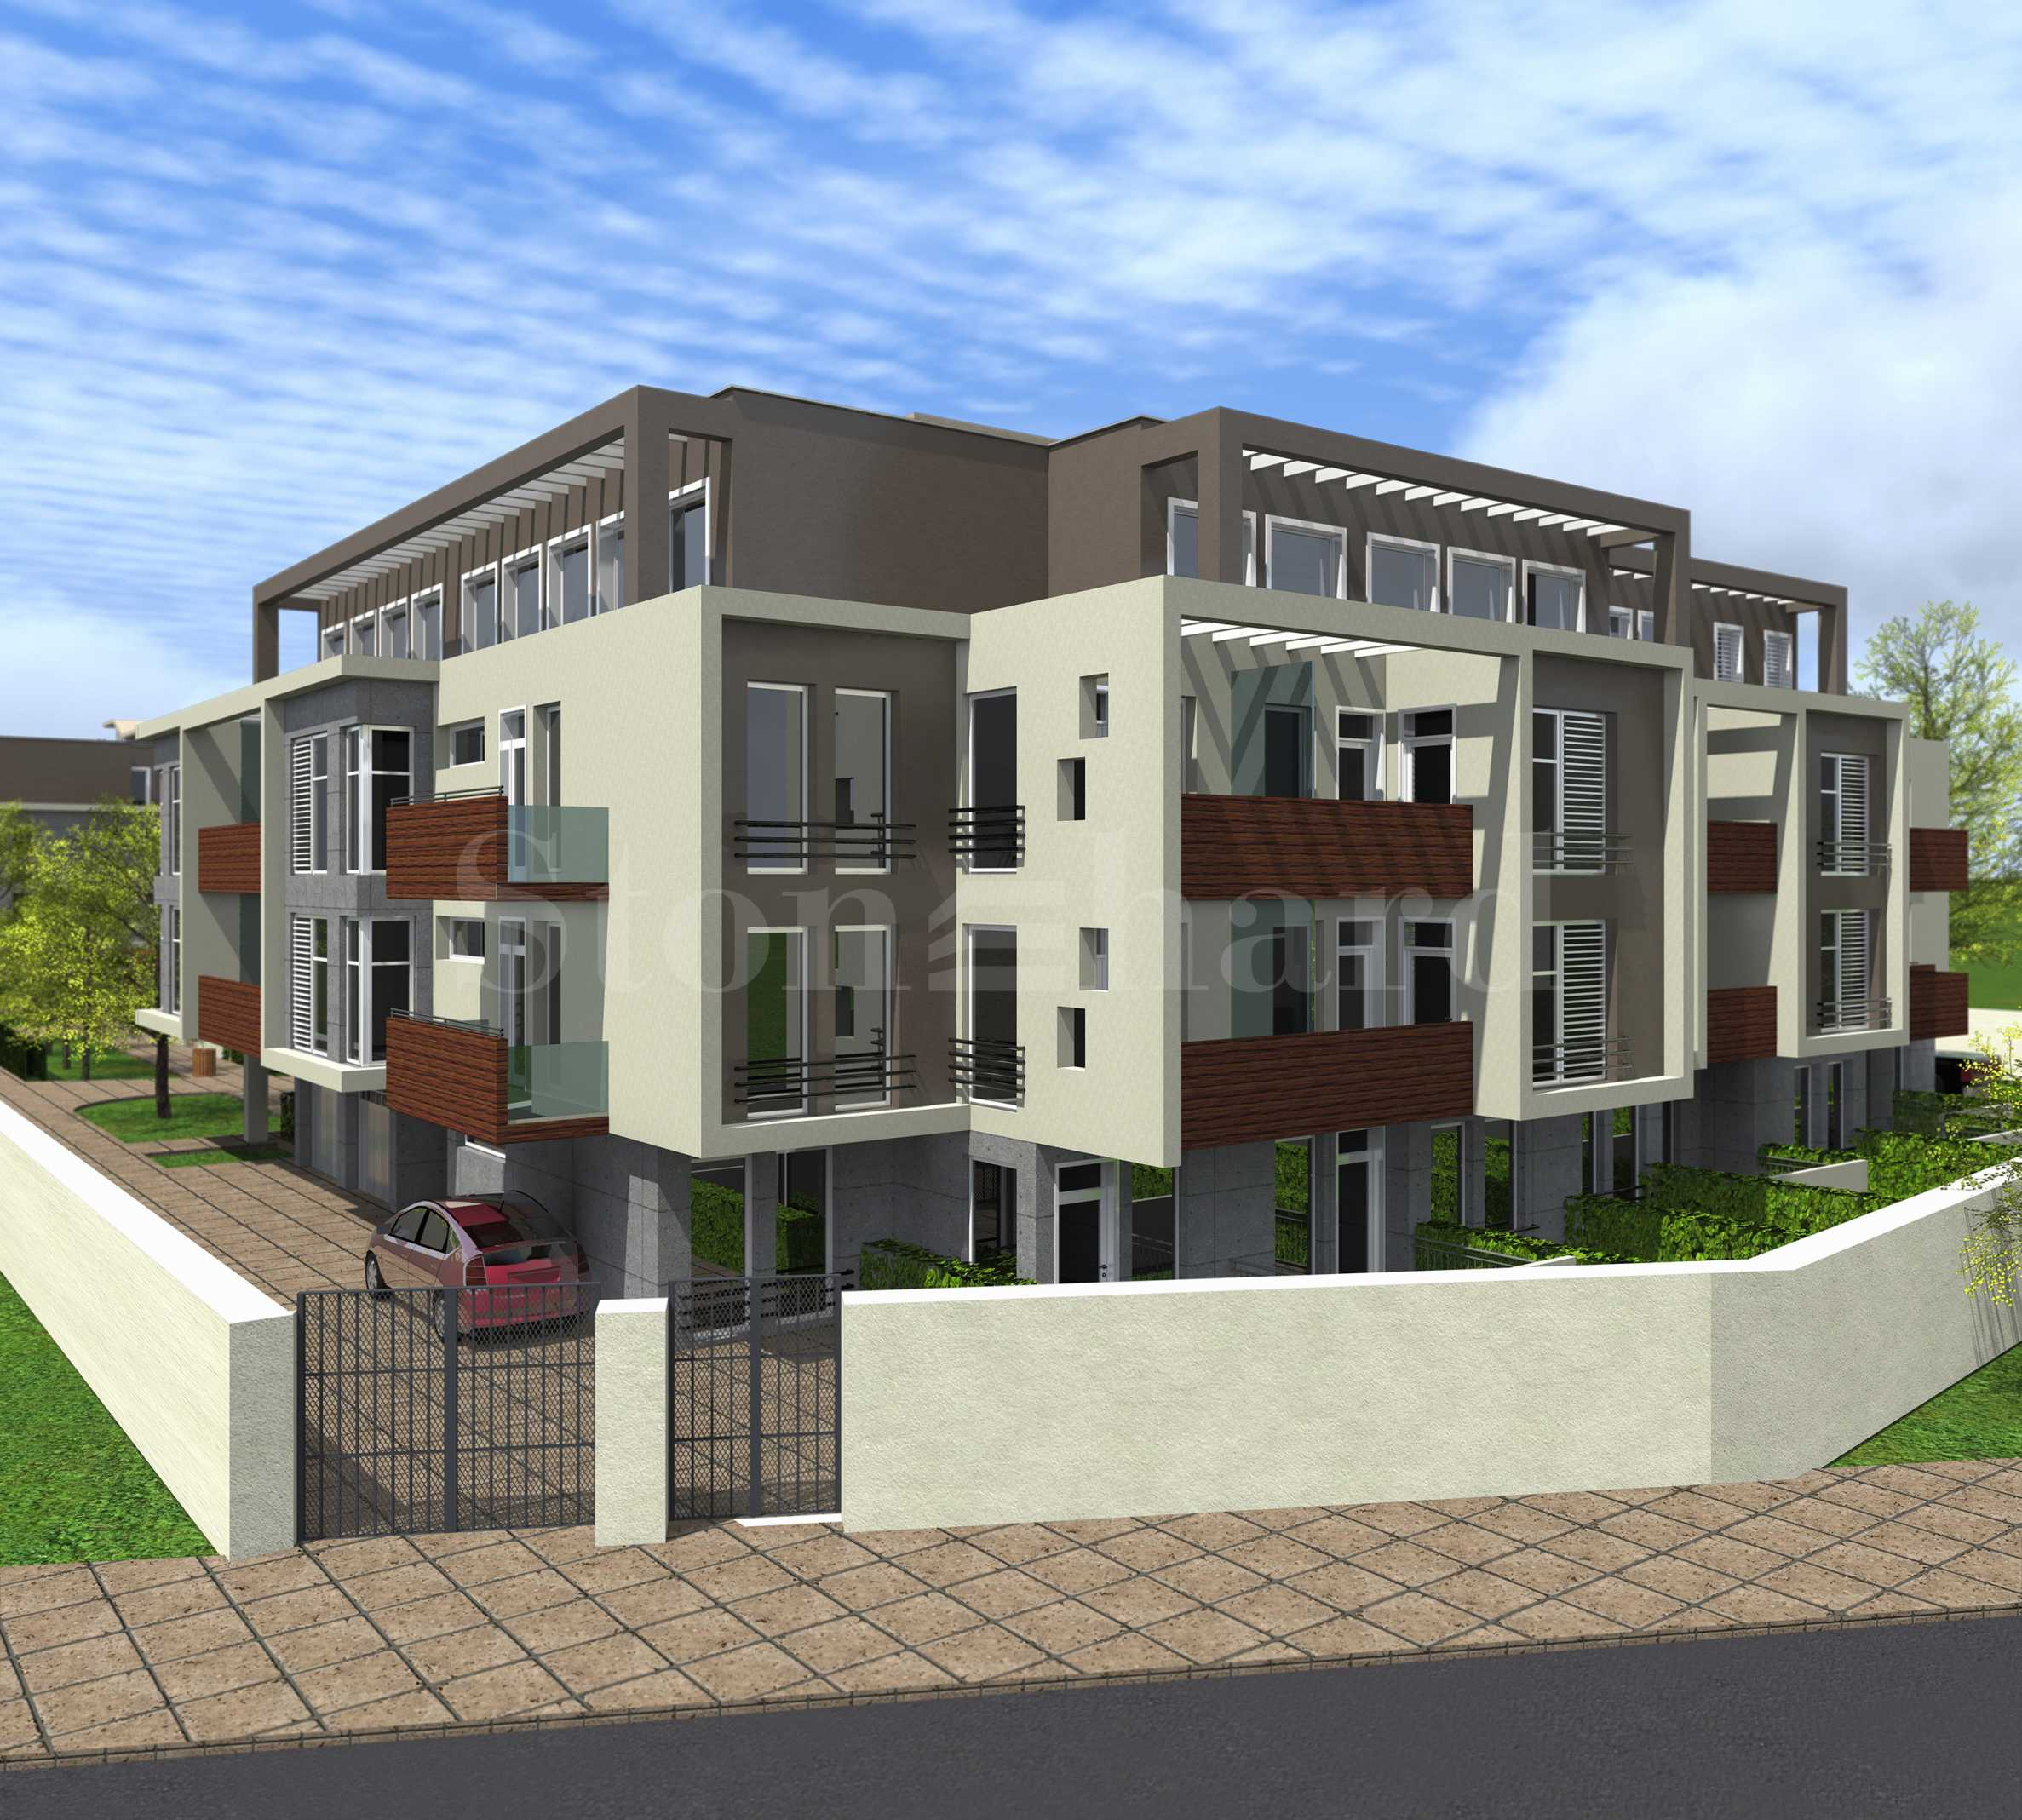 Diverse apartments in a developed neighborhood1 - Stonehard